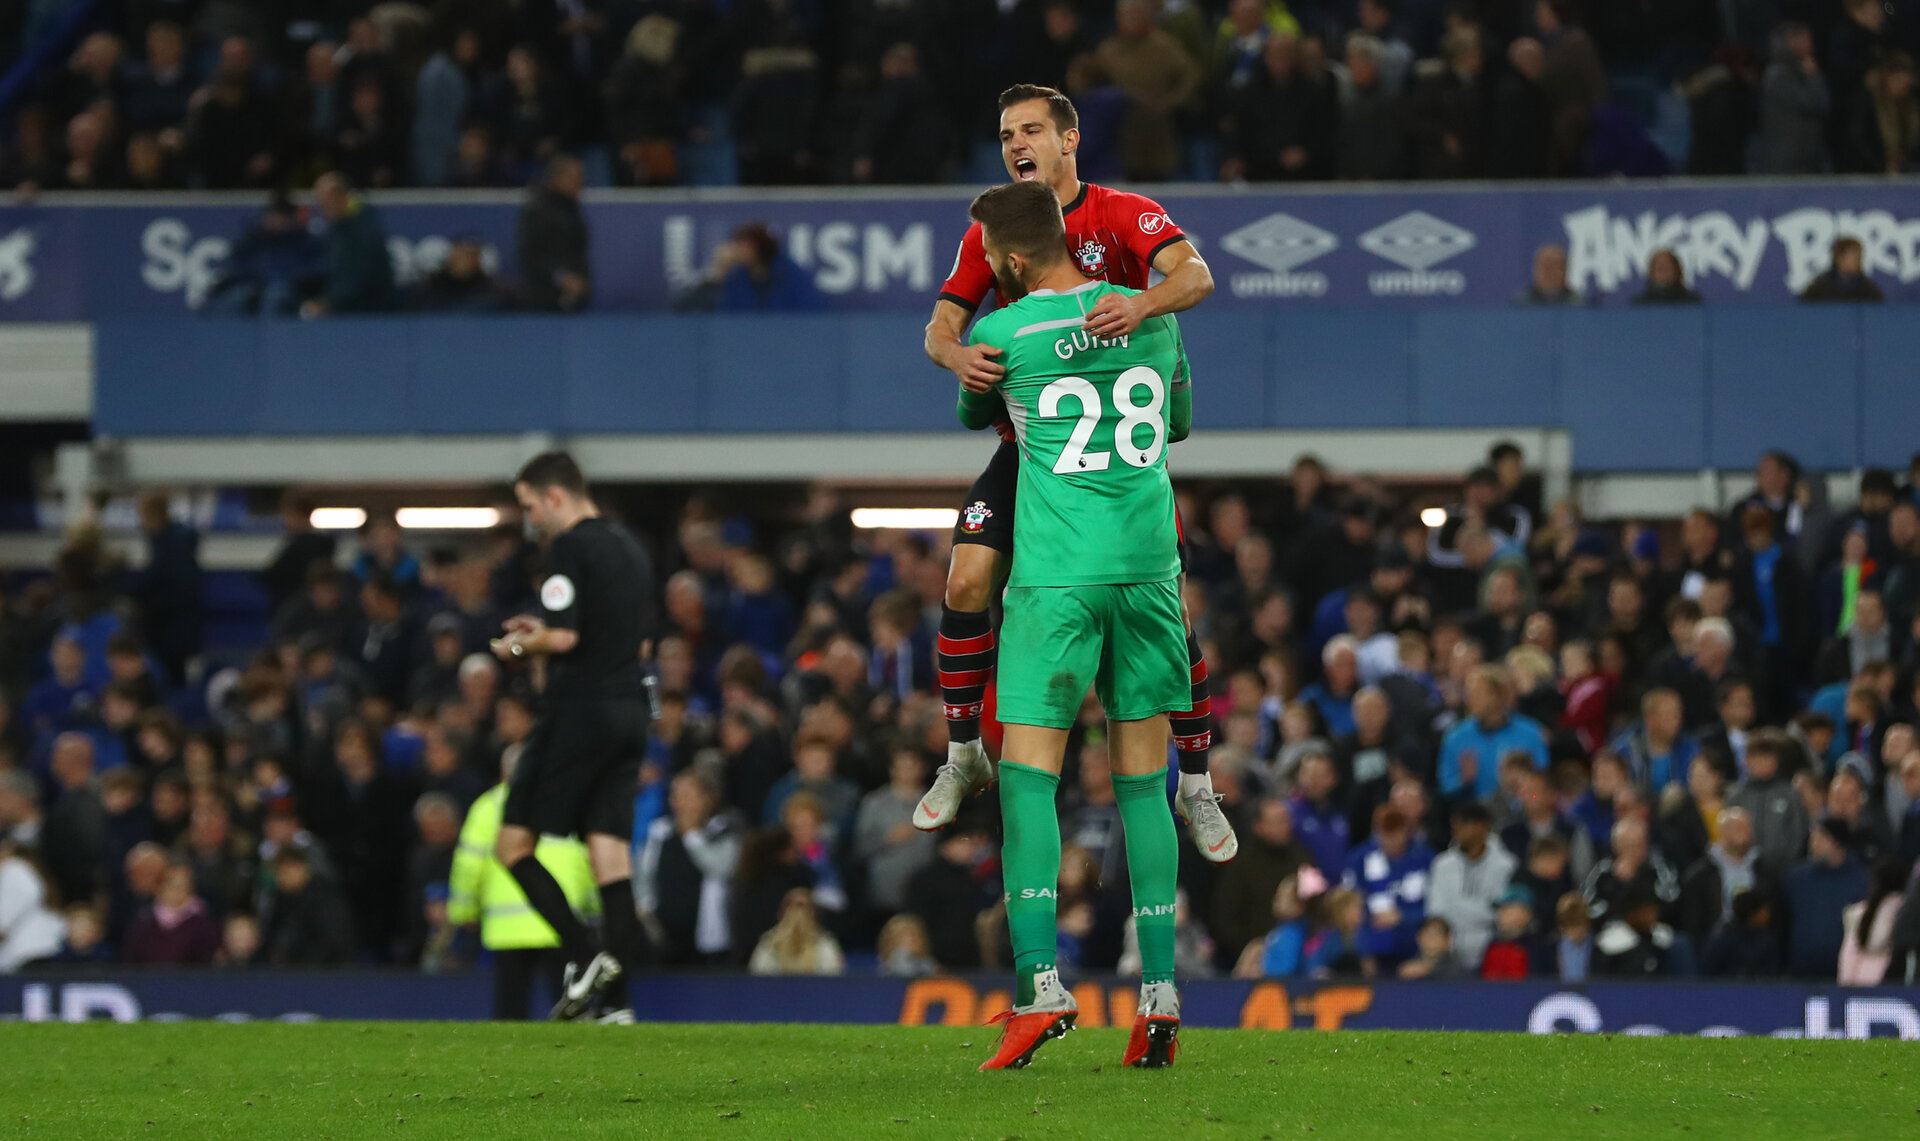 LIVERPOOL, ENGLAND - OCTOBER 02: Cedric and Angus Gunn of Southampton celebrate during the Carabao Cup Third Round match between Everton and Southampton at Goodison Park on October 2nd, 2018 in Liverpool, England. (Photo by Matt Watson/Southampton FC via Getty Images)